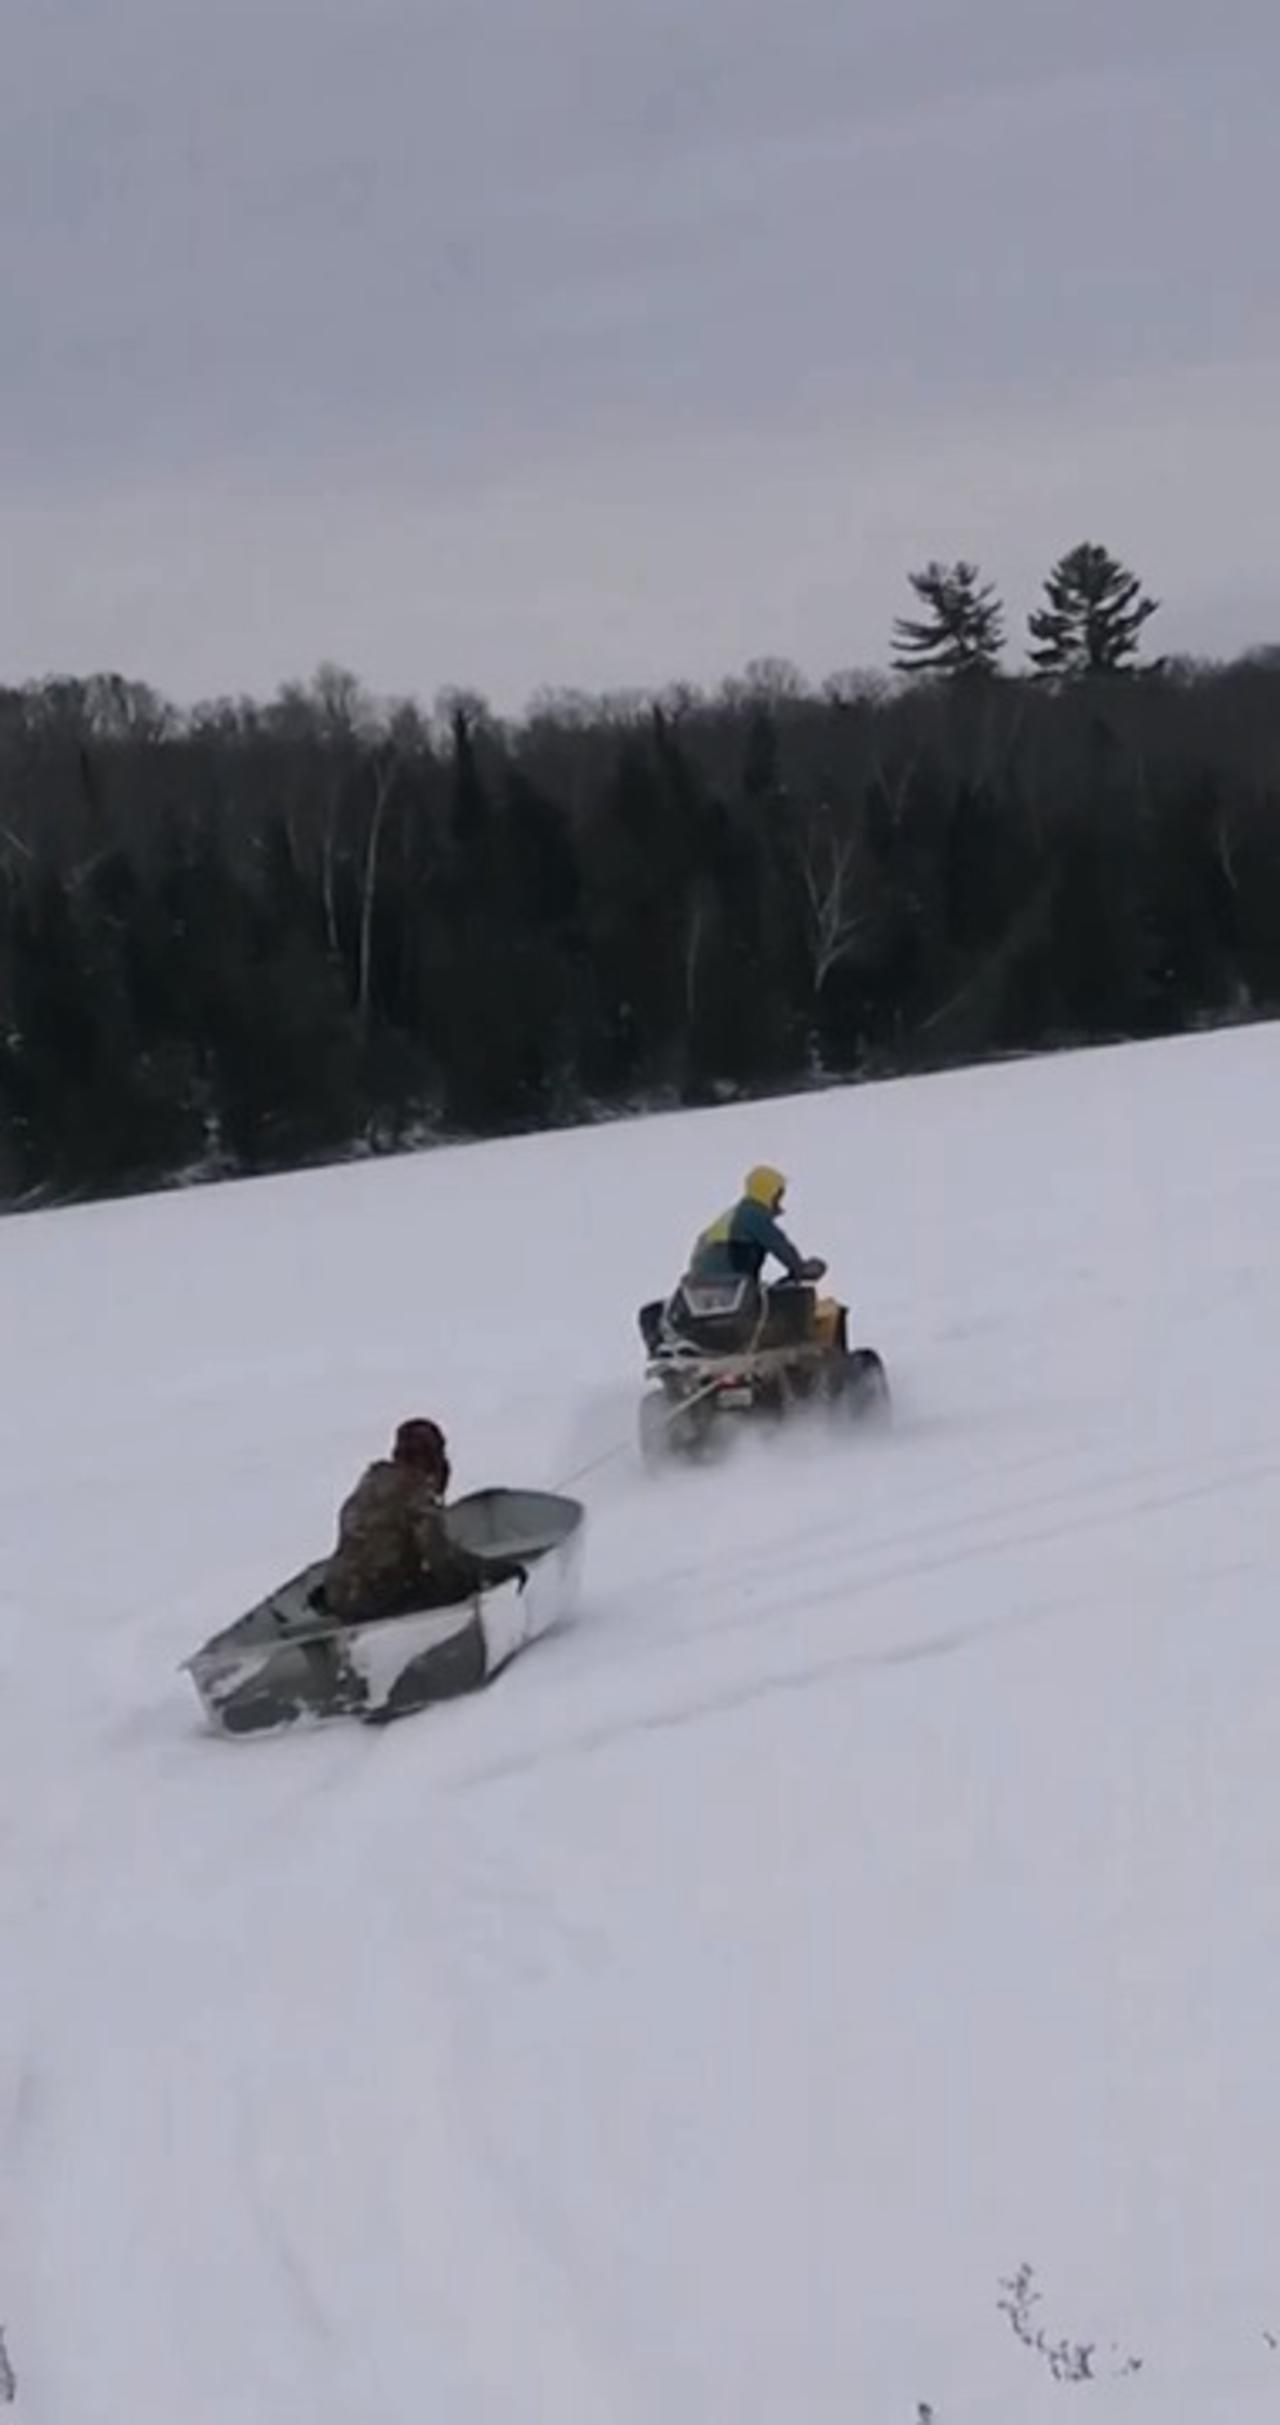 Person Riding ATV on Snow Pulls Another Person in Boat